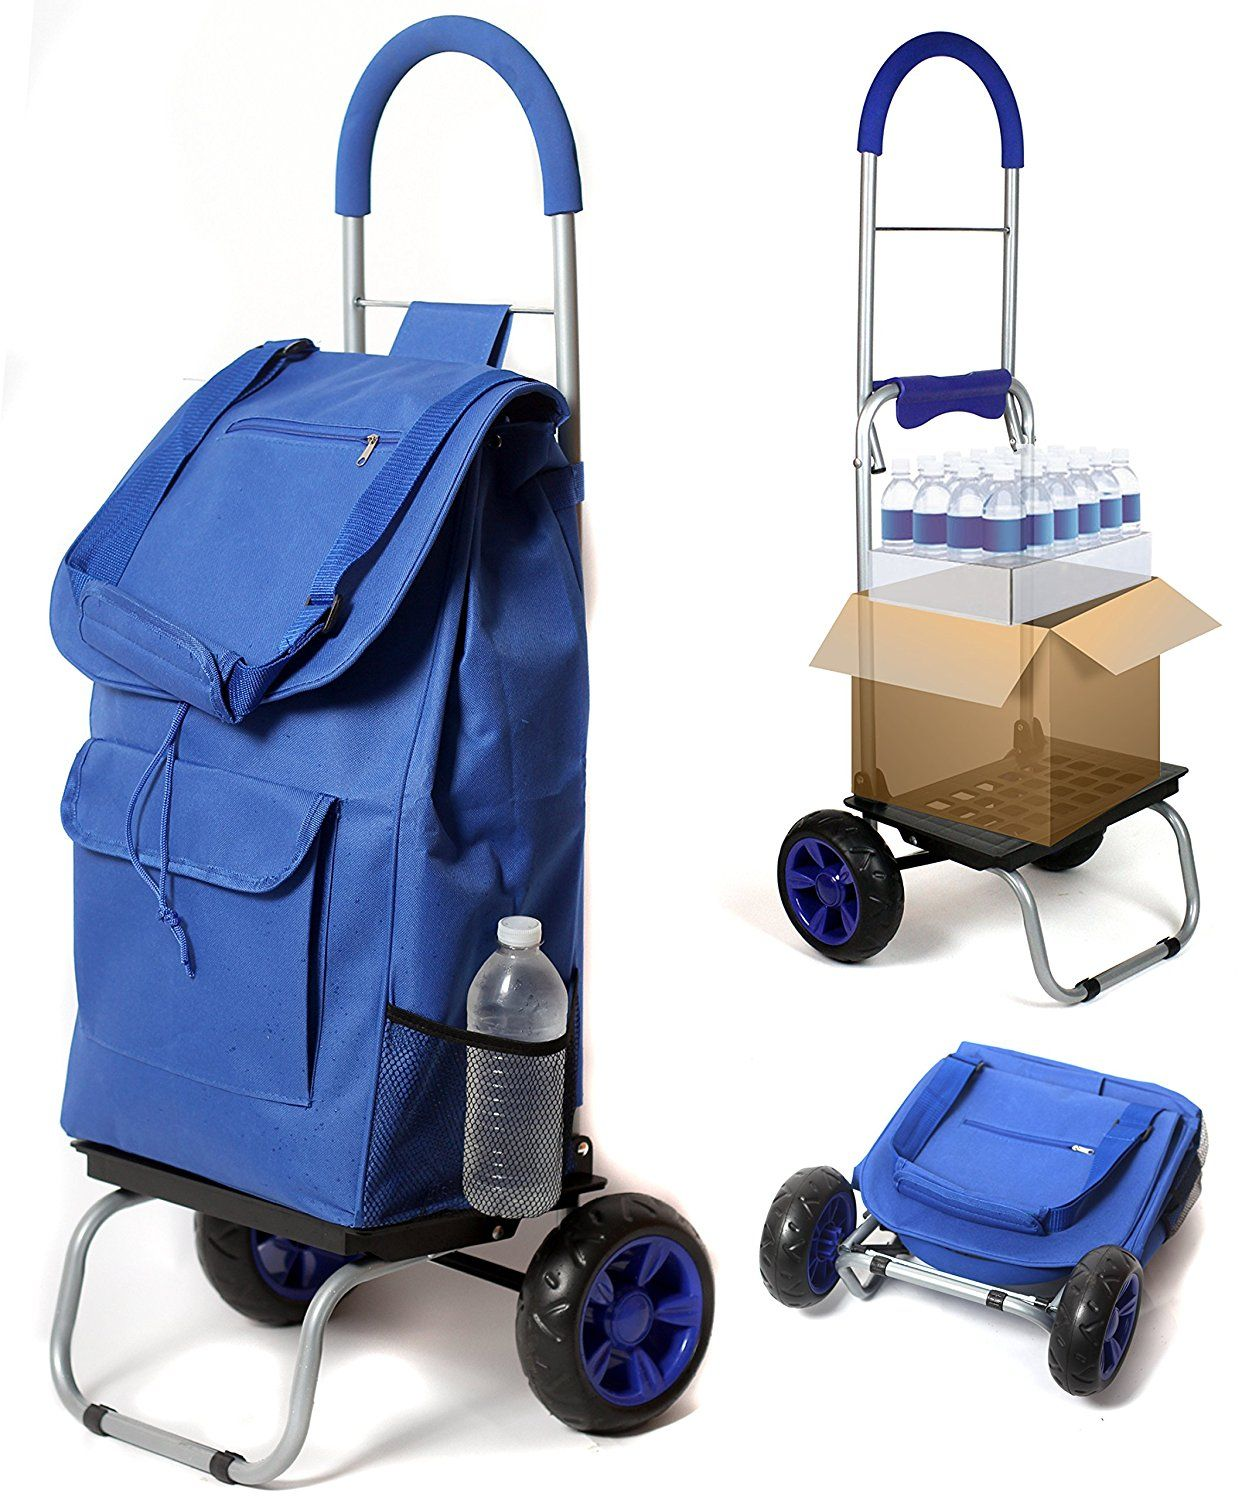 Folding Ping Carts Great For Dorms Apartments Seniors And City Living